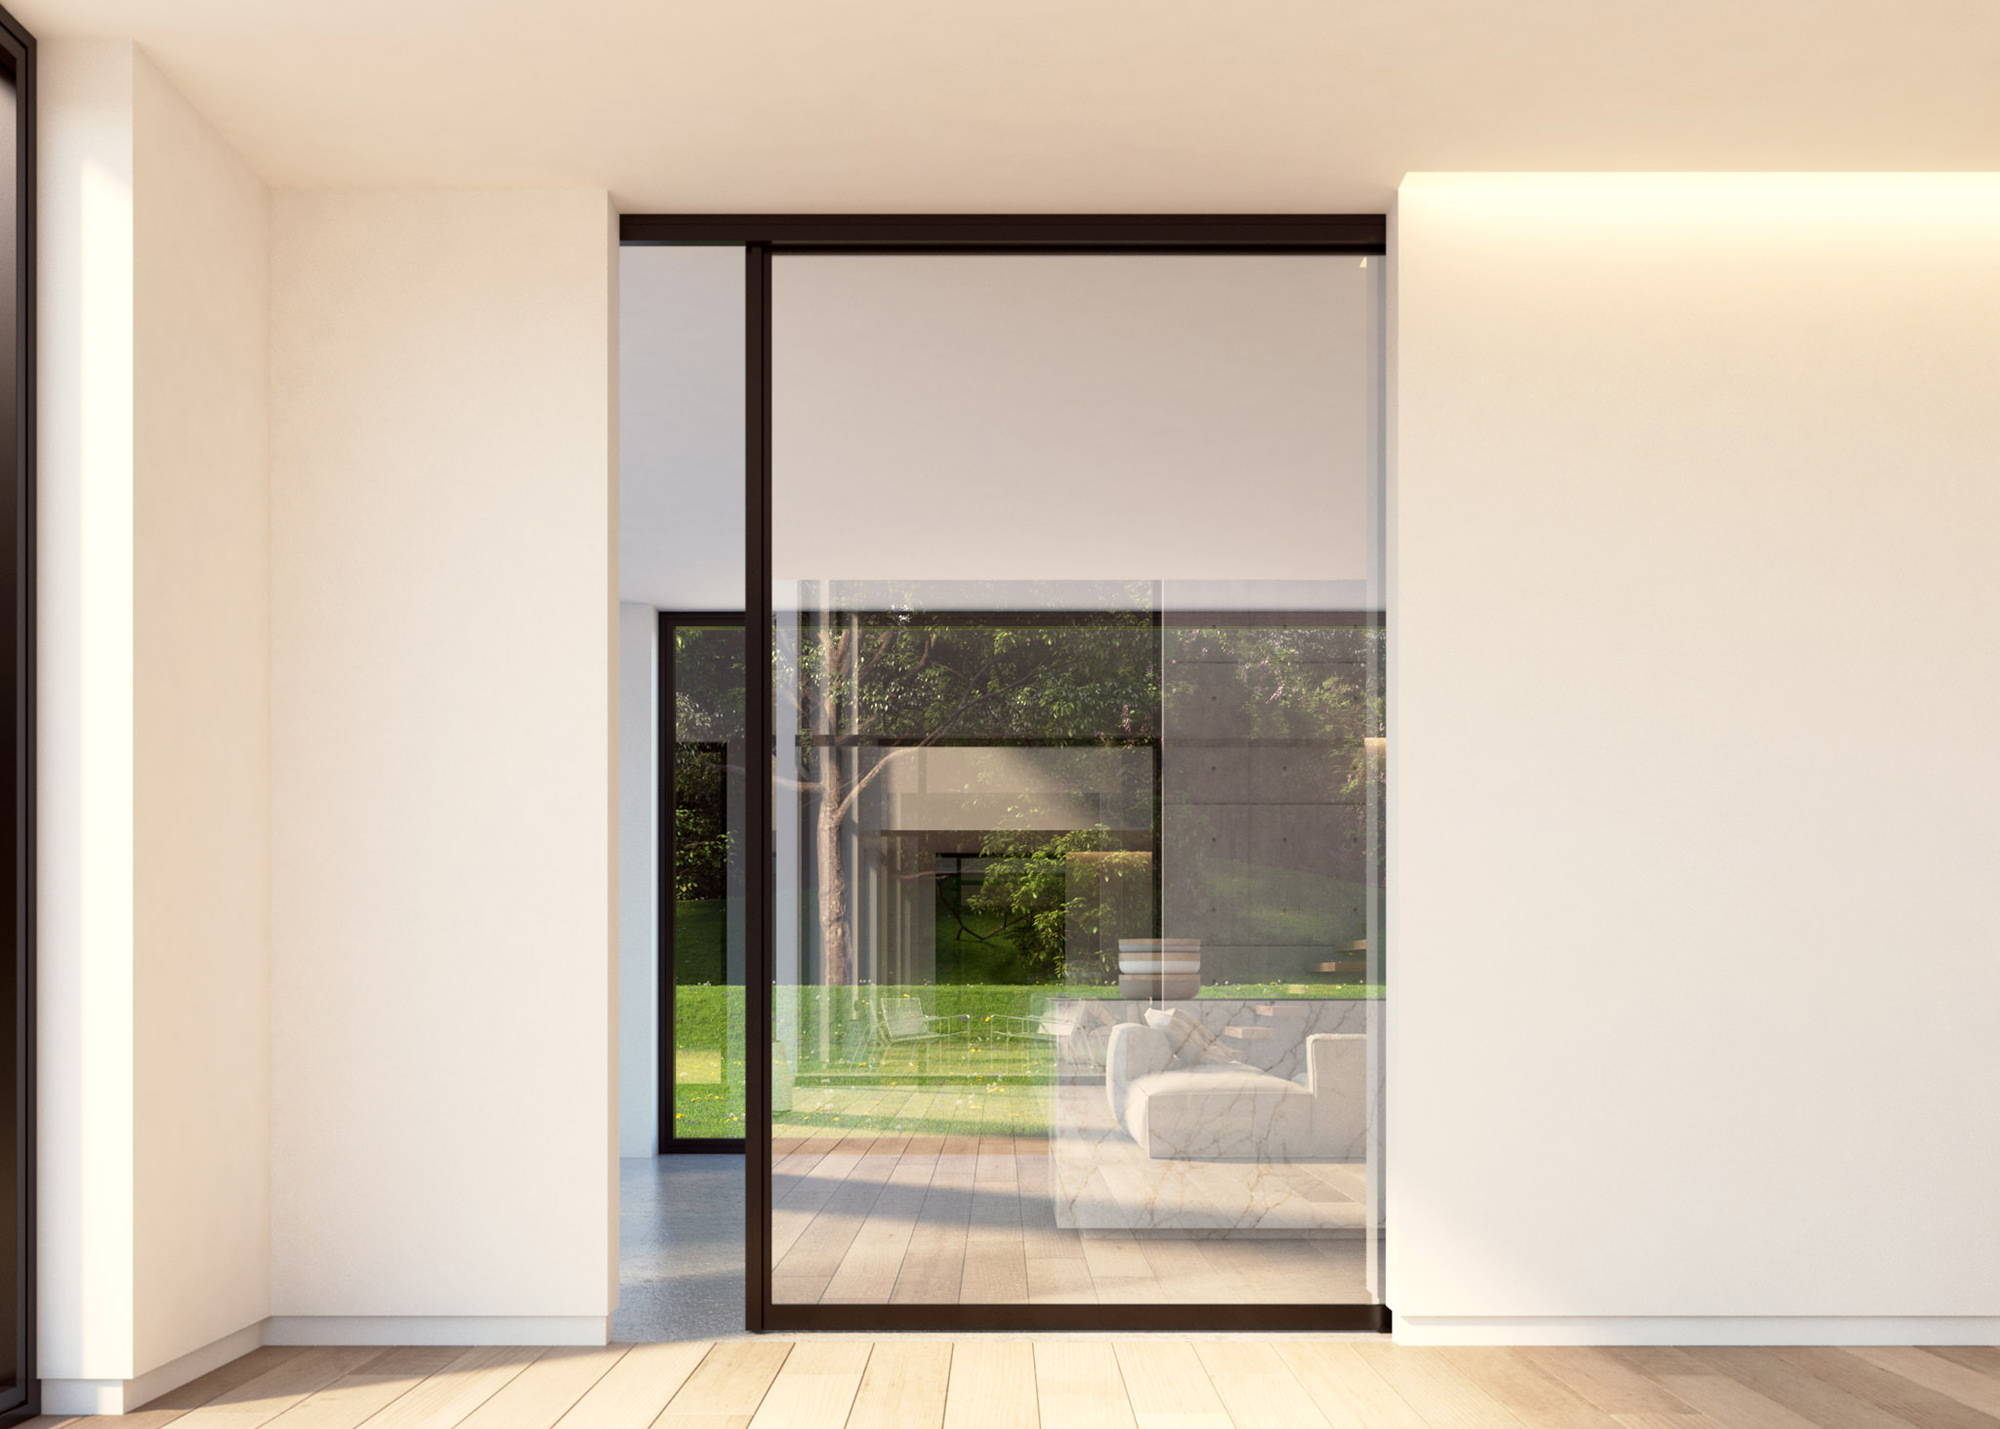 Gl and aluminium sliding door system – Portapivot Klein Interior Sliding Gl Doors on